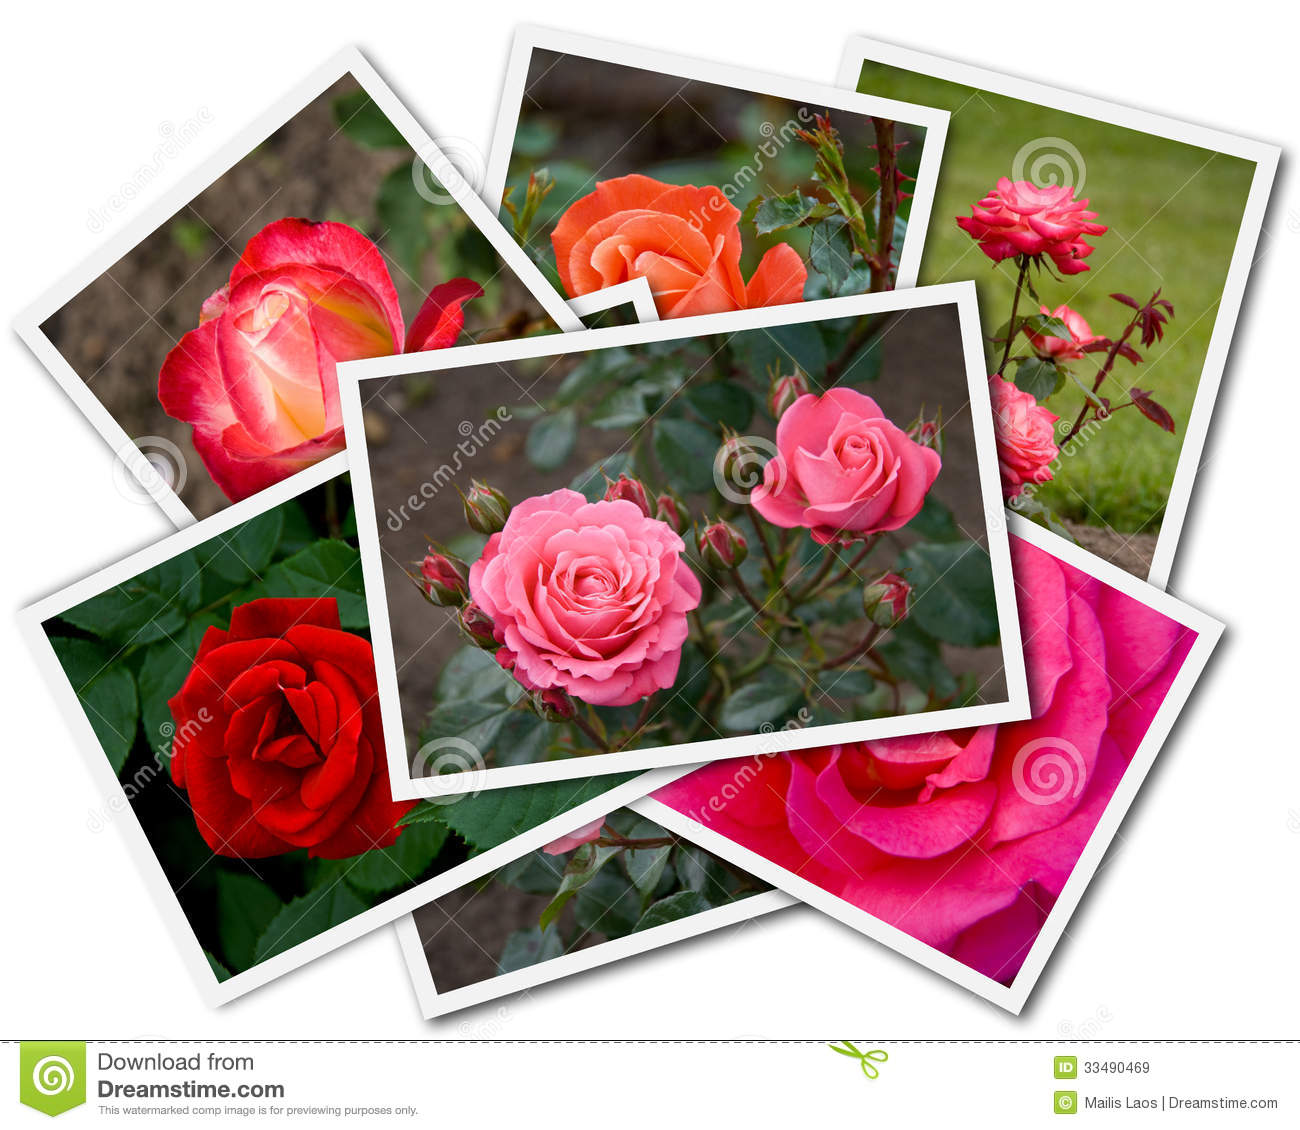 Download Roses Collage stock image. Image of card, pile, print - 33490469